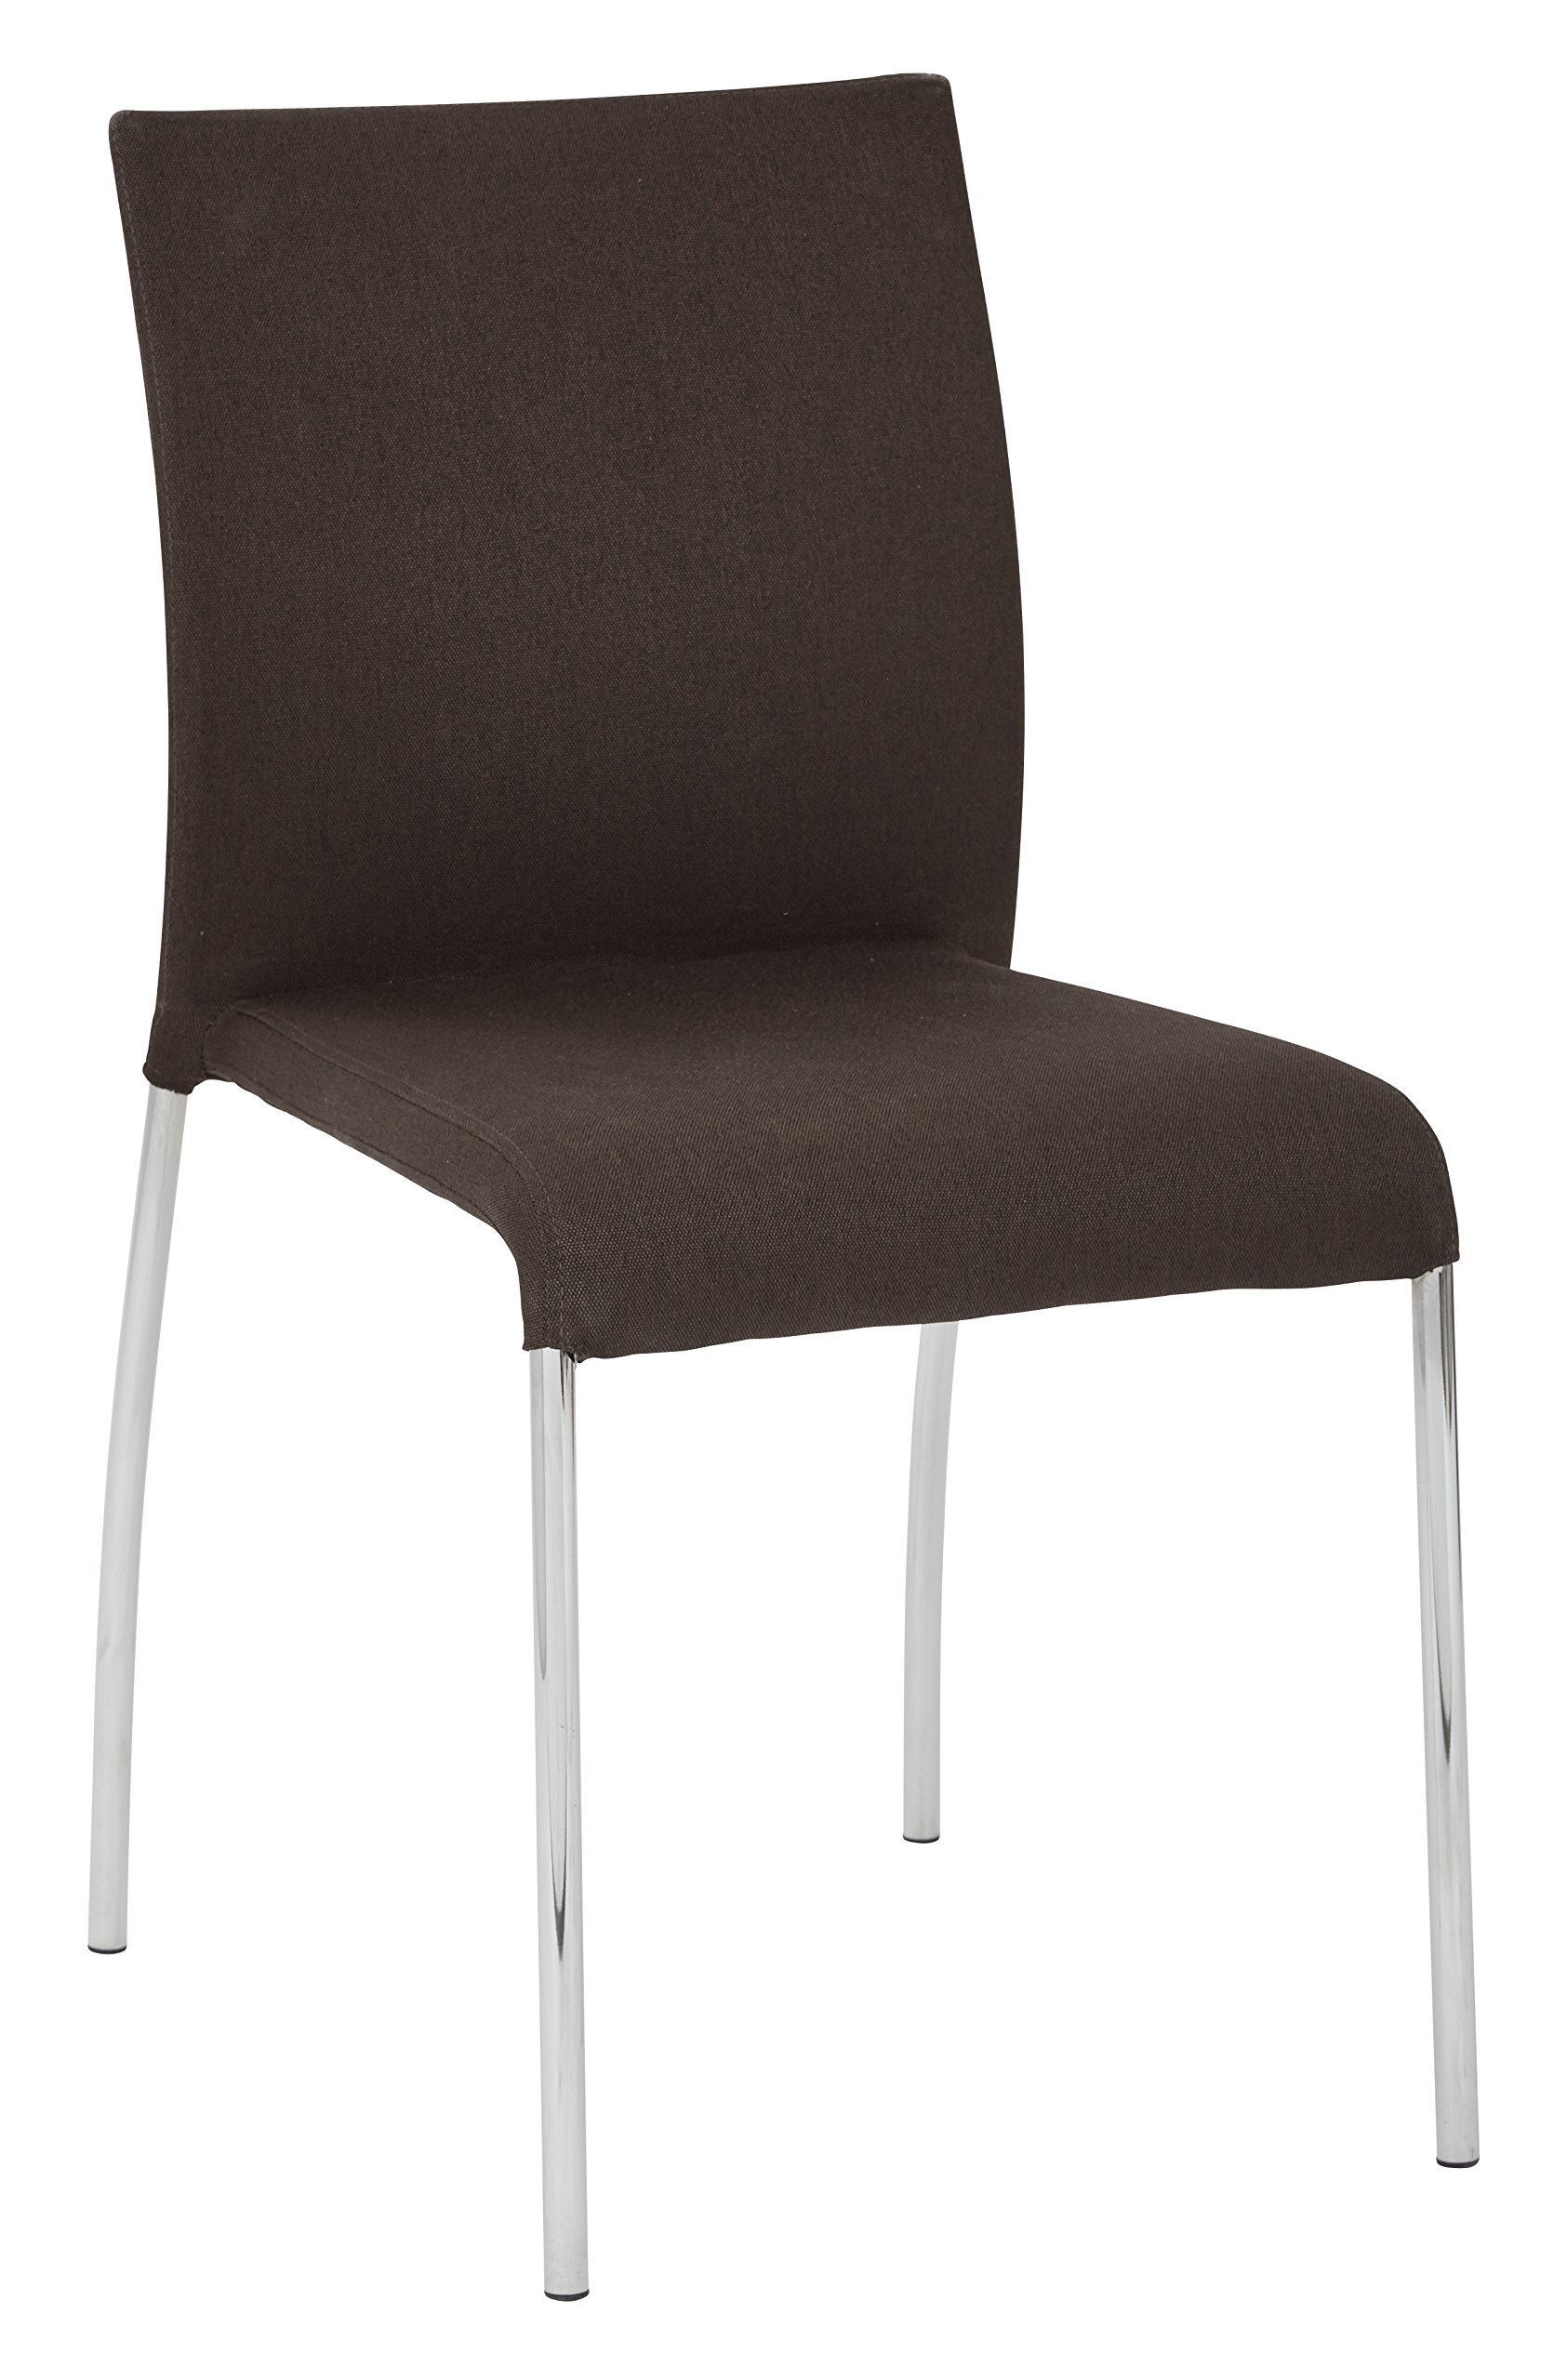 AVE SIX Conway Upholstered Stacking Chair with Chrome Legs, 4-Pack, Chocolate